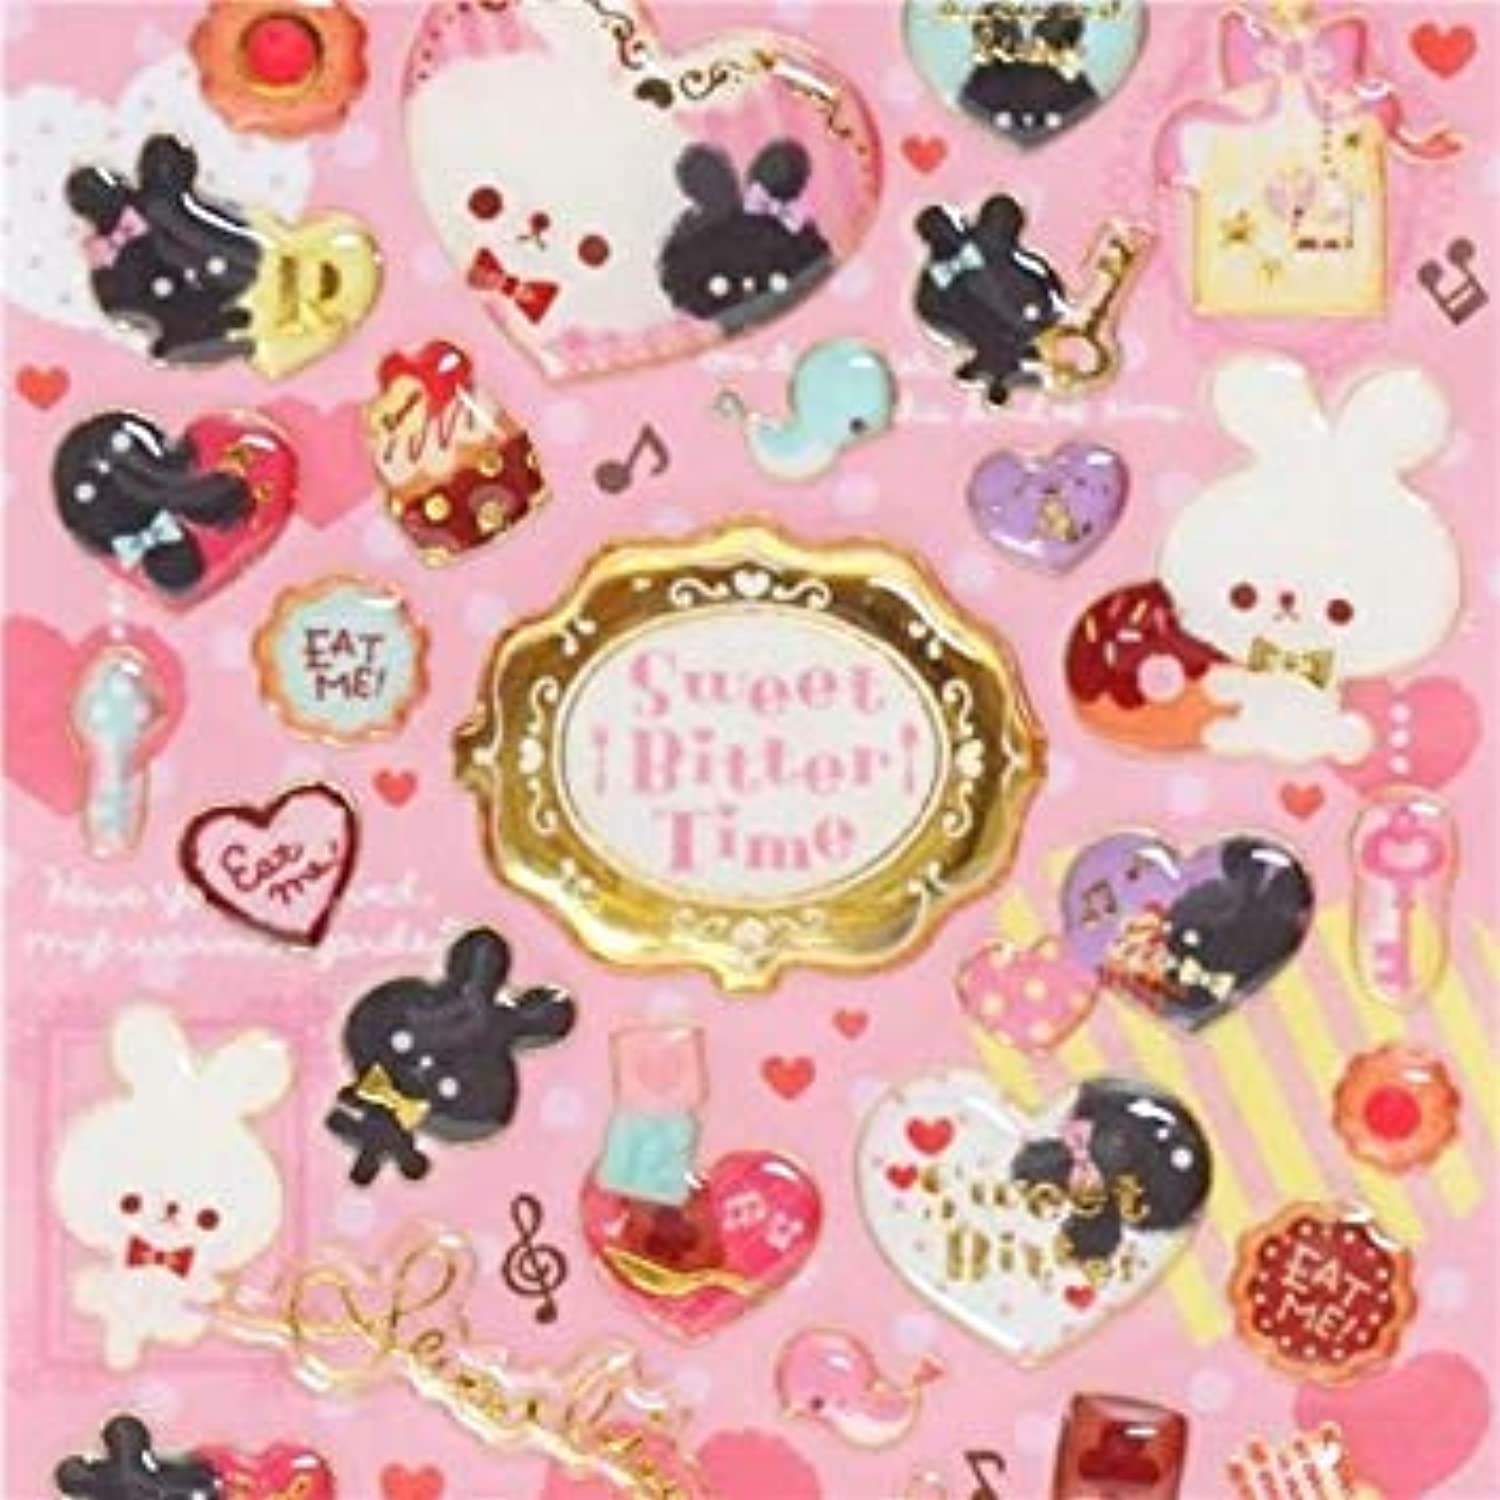 Kawaii Hard 3D Stickers with Heart Rabbit gold Metallic Embellishment Japan